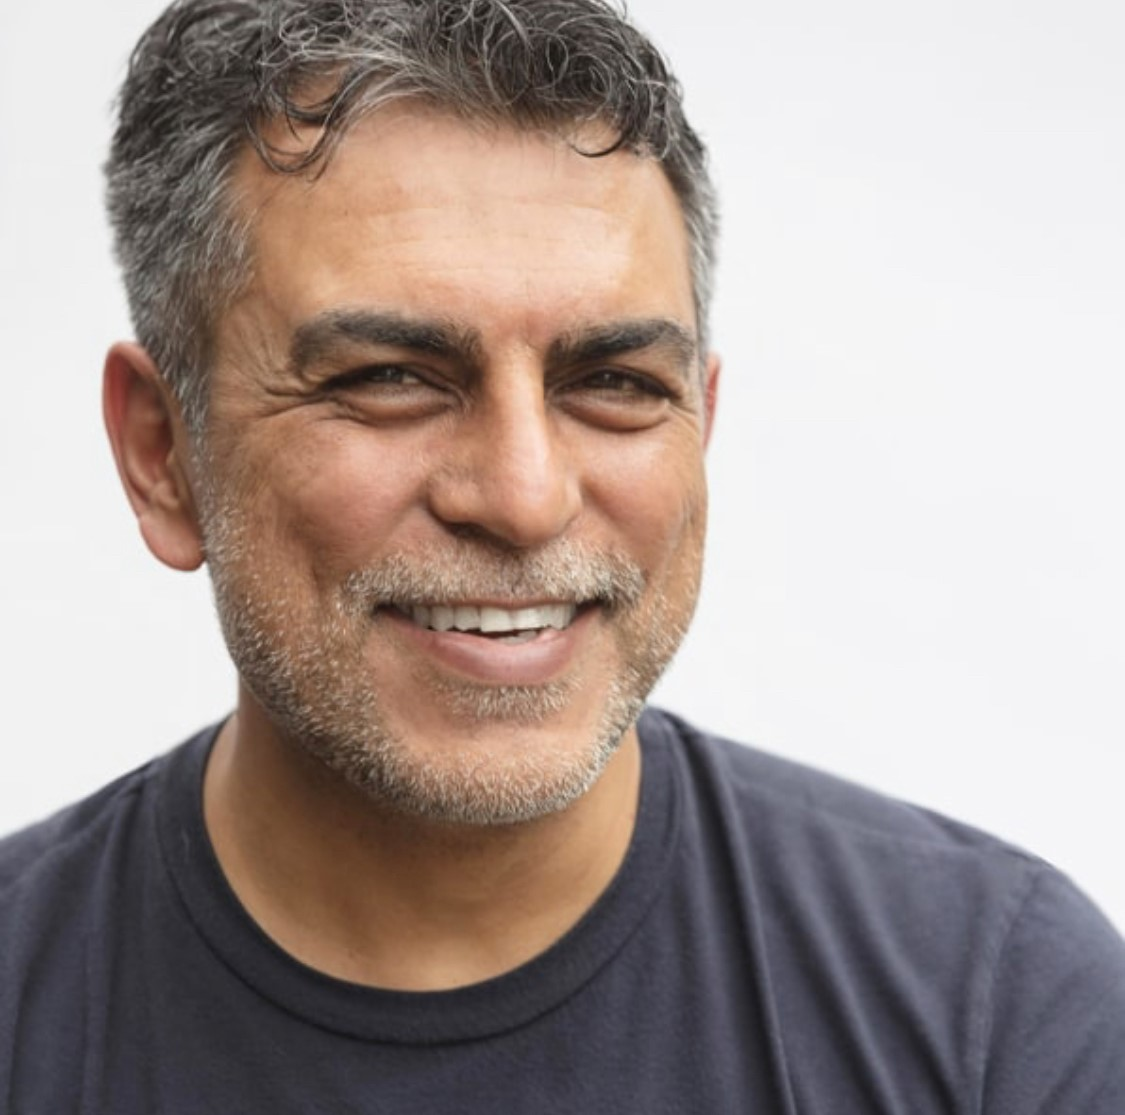 Sanjeev Bahl: 'Our mentality is to use our profits wisely'